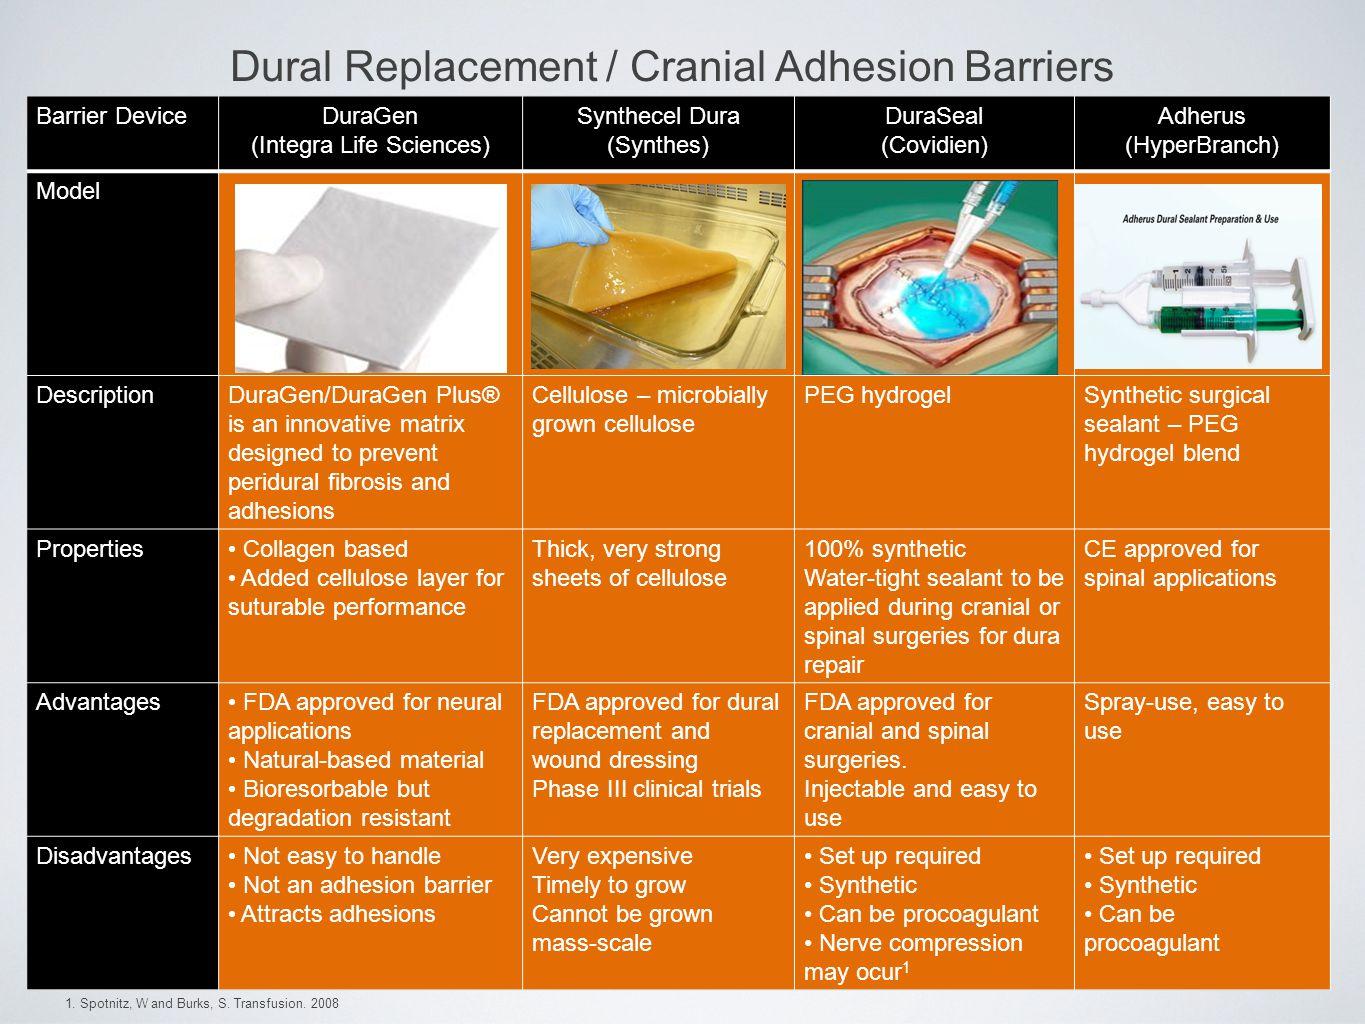 Dural Replacement / Cranial Adhesion Barriers